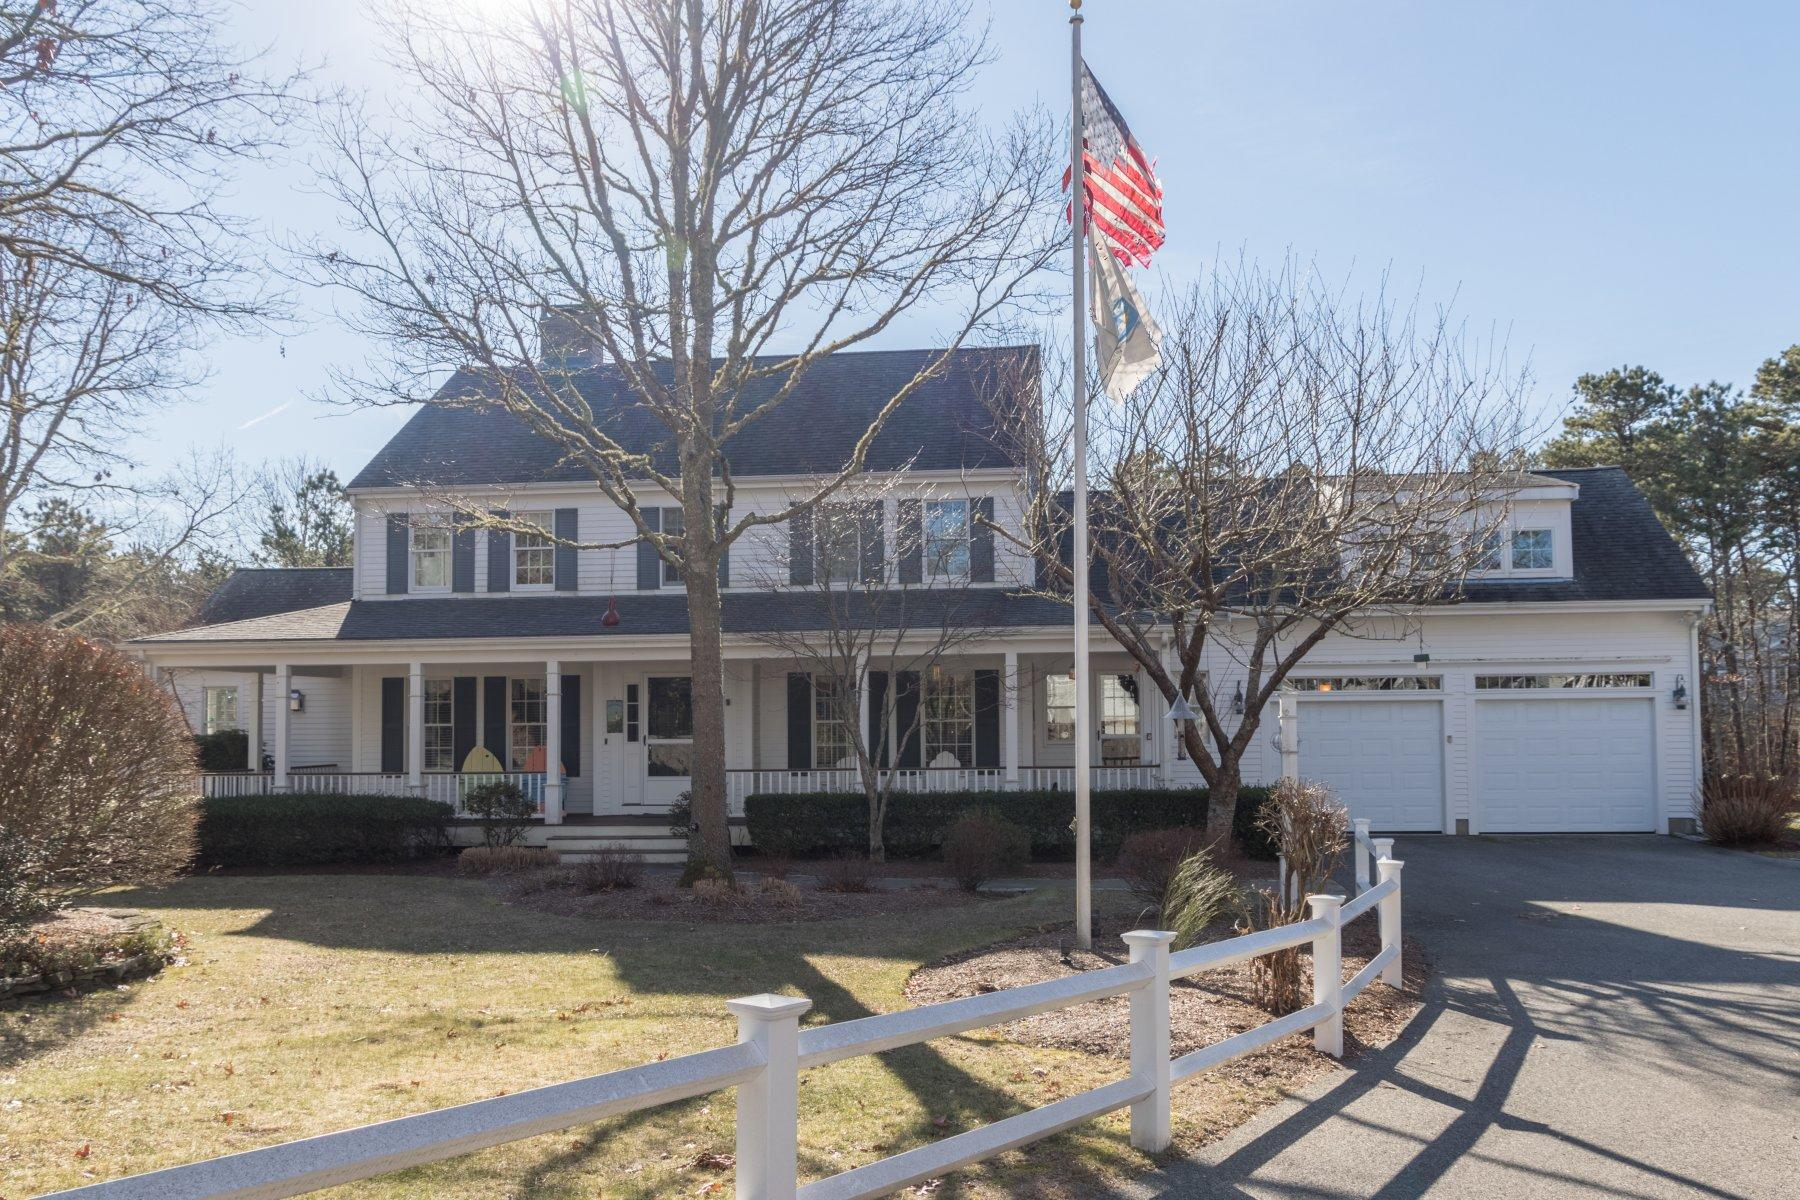 Single Family Home for Active at 12 Harding Lane, Harwich, MA 12 Harding Lane Harwich, Massachusetts 02645 United States